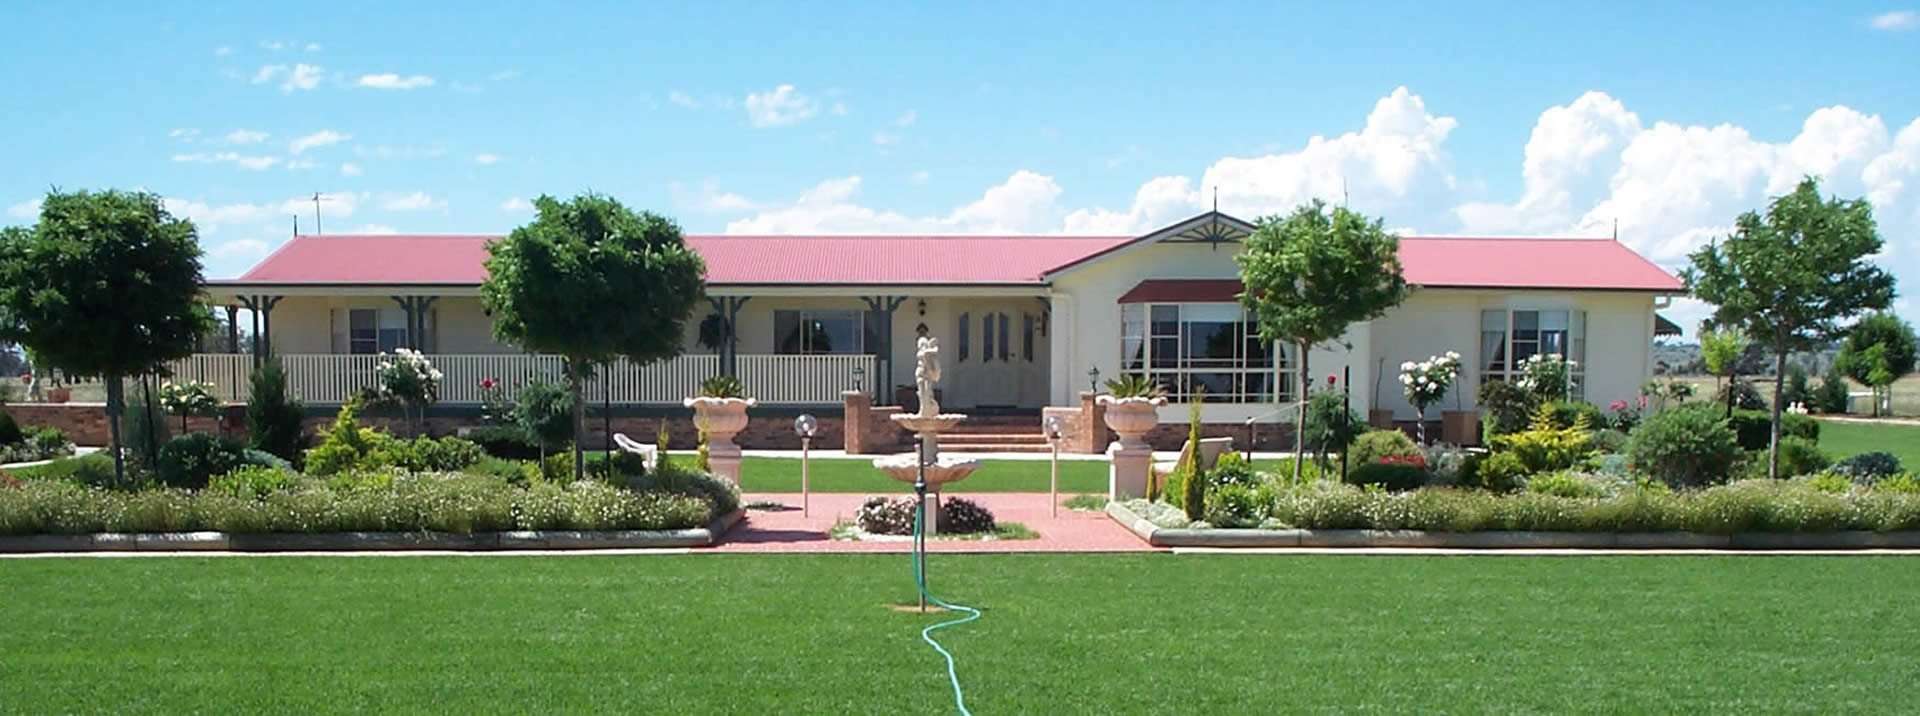 The fascade of a large colonial style transportable home in NSW